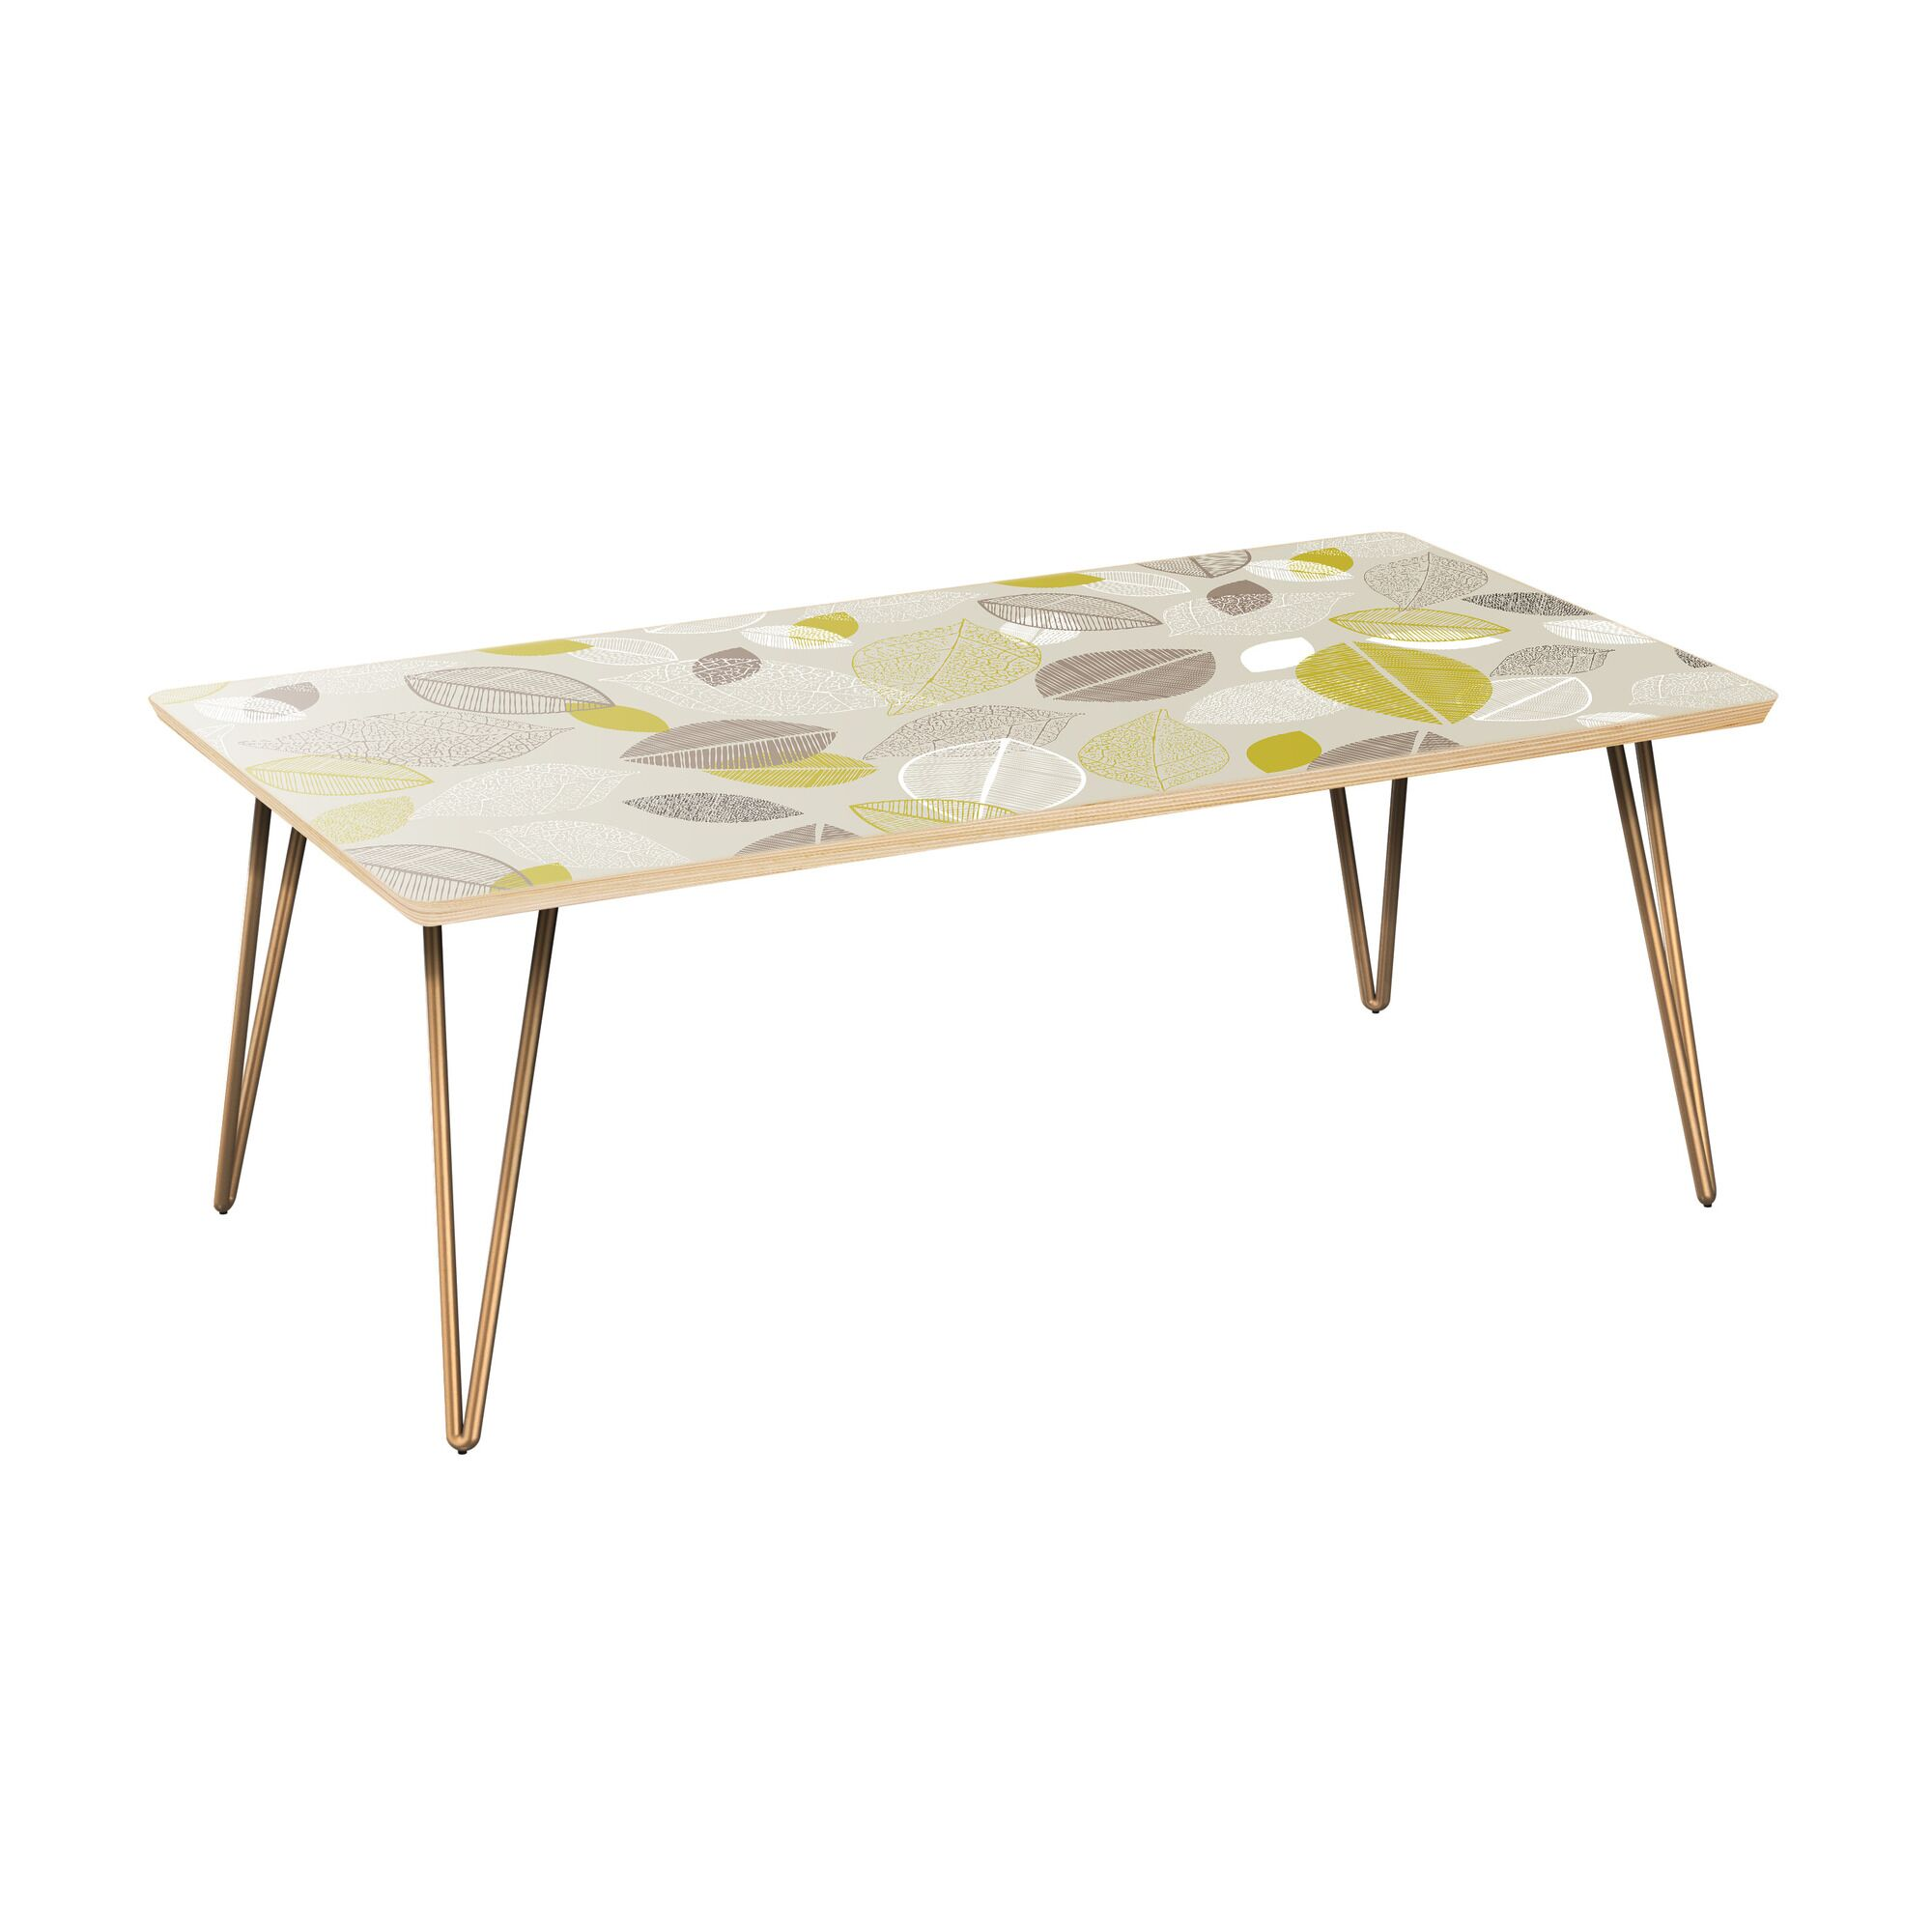 Richarson Coffee Table Table Top Boarder Color: Natural, Table Base Color: Brass, Table Top Color: Blue